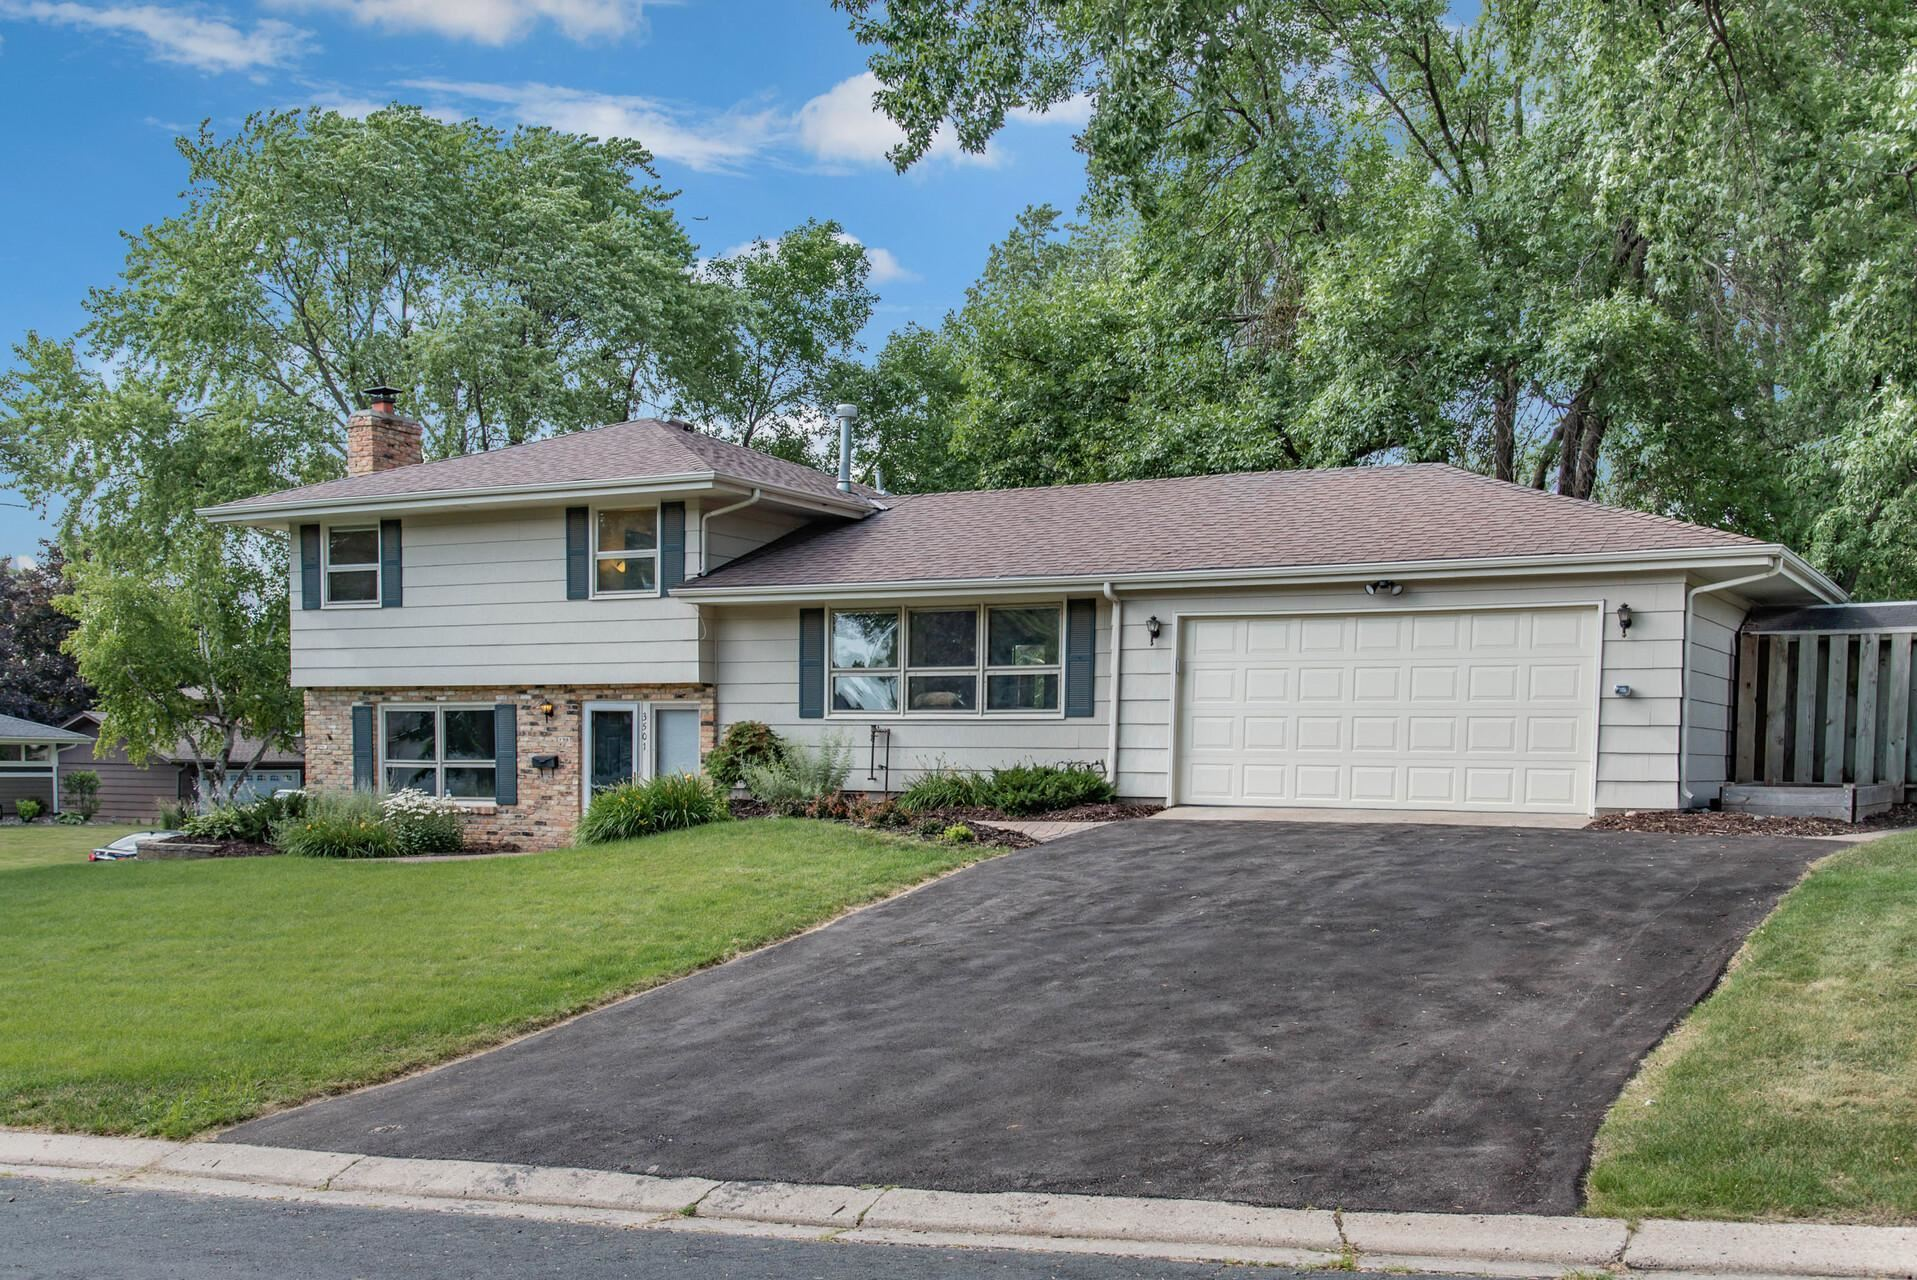 3501 Zealand Avenue N, New Hope, MN 55427 - MLS#: 5571330